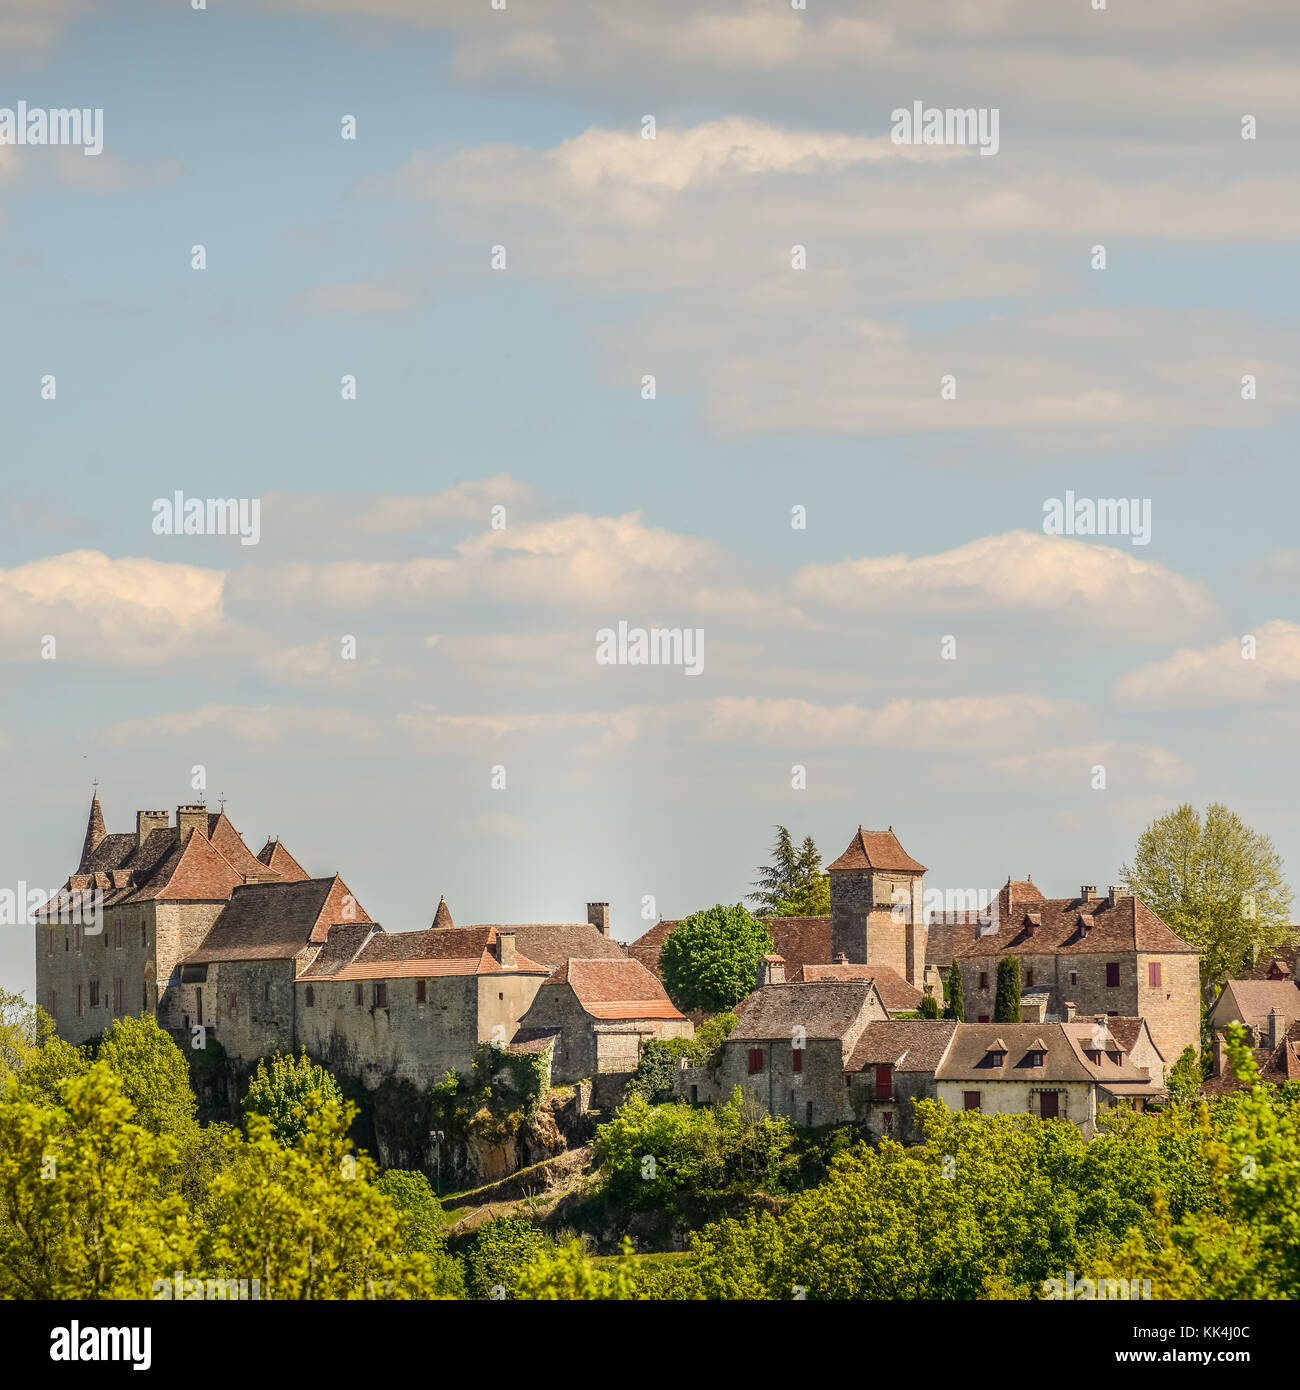 Loubressac most pictorial villages of france lot region Stock Photo